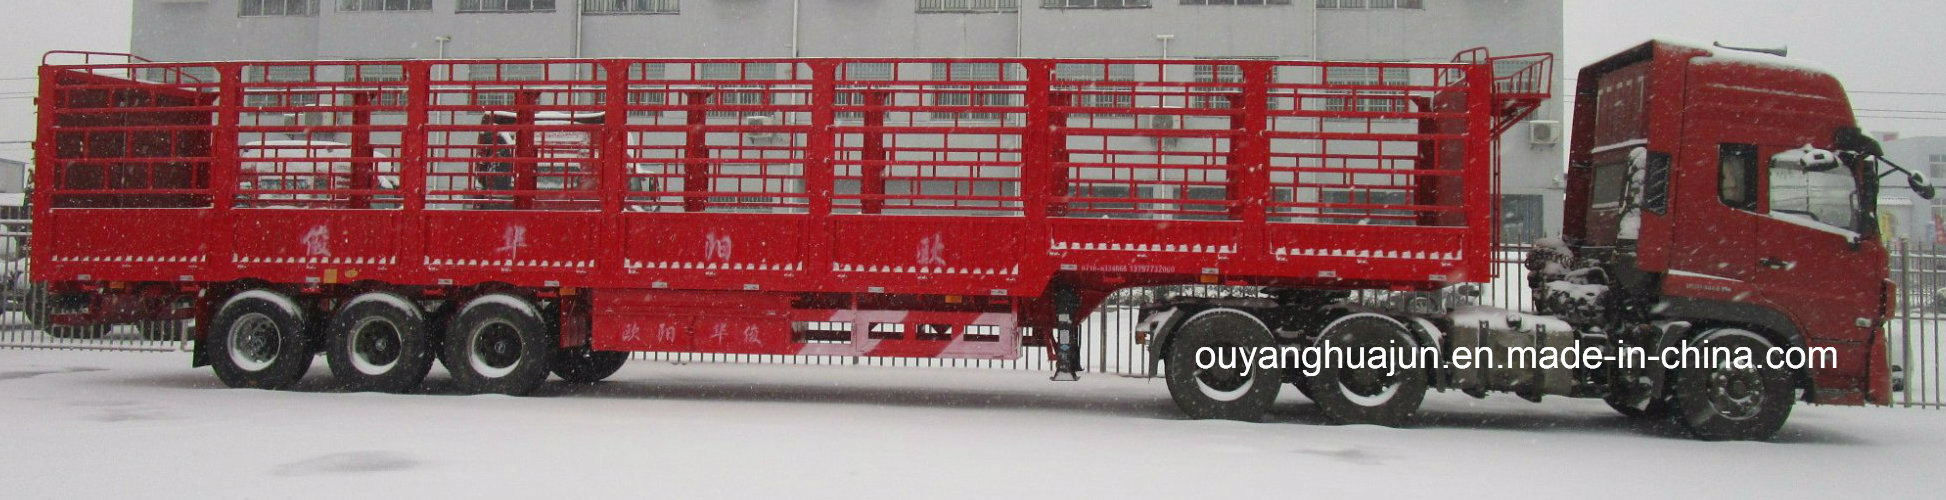 Warehouse Column Semitrailer with Short Locks